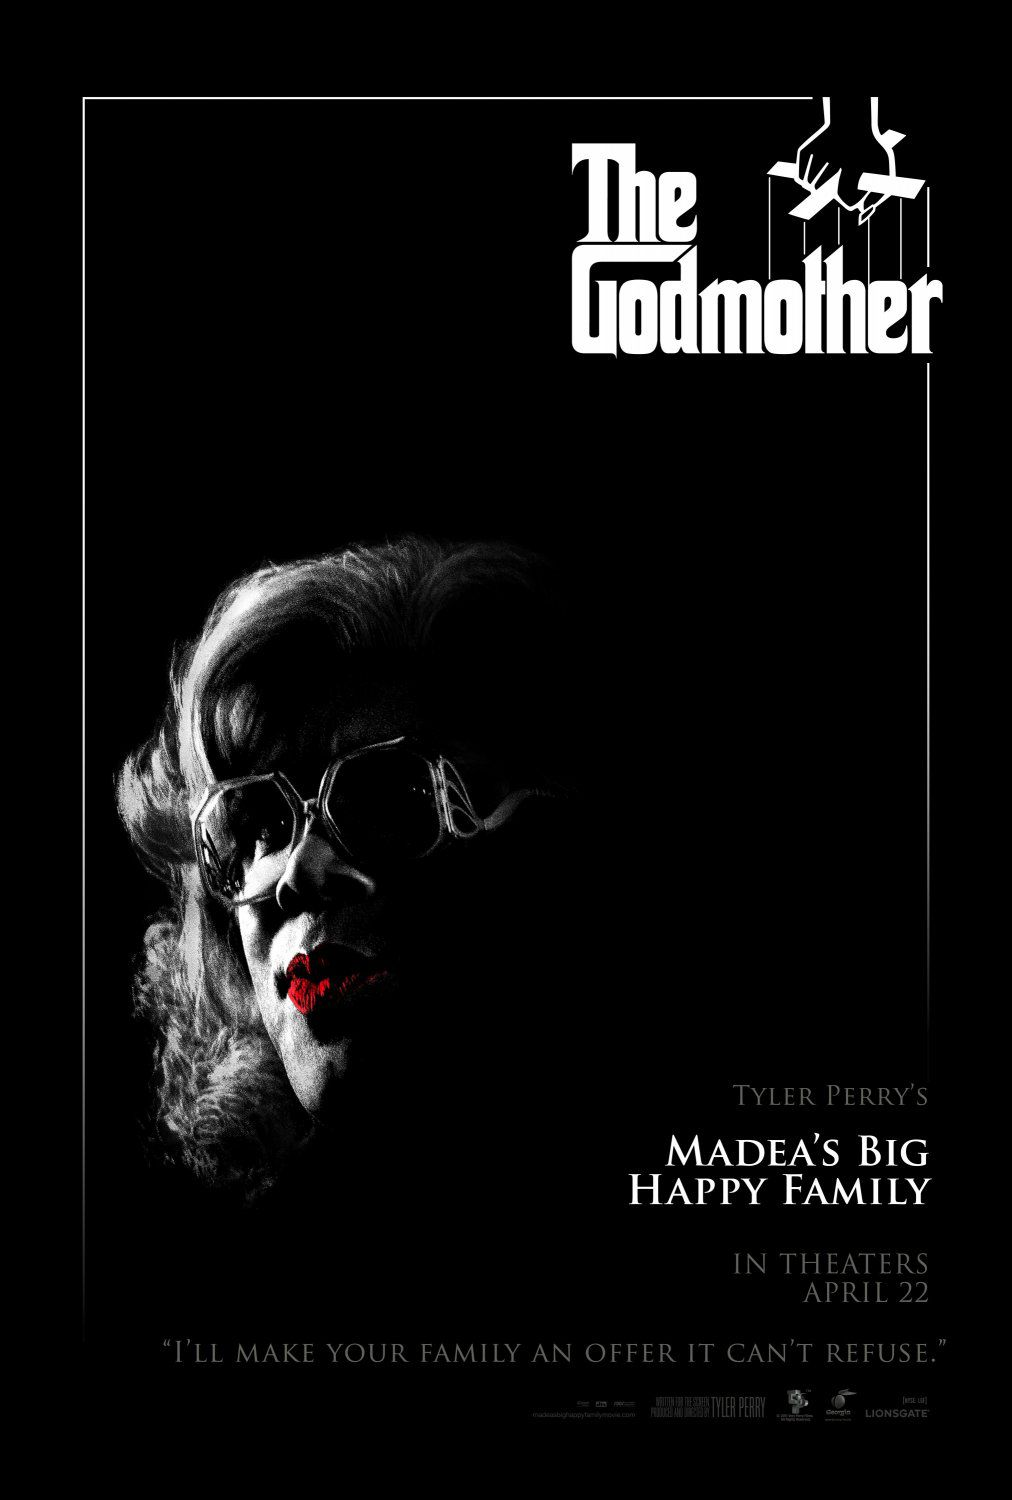 Madeas big Happy Family - Madea Famiglia Felice - Tyler Perry - film fun poster - Al Padrino Madea The GodMother